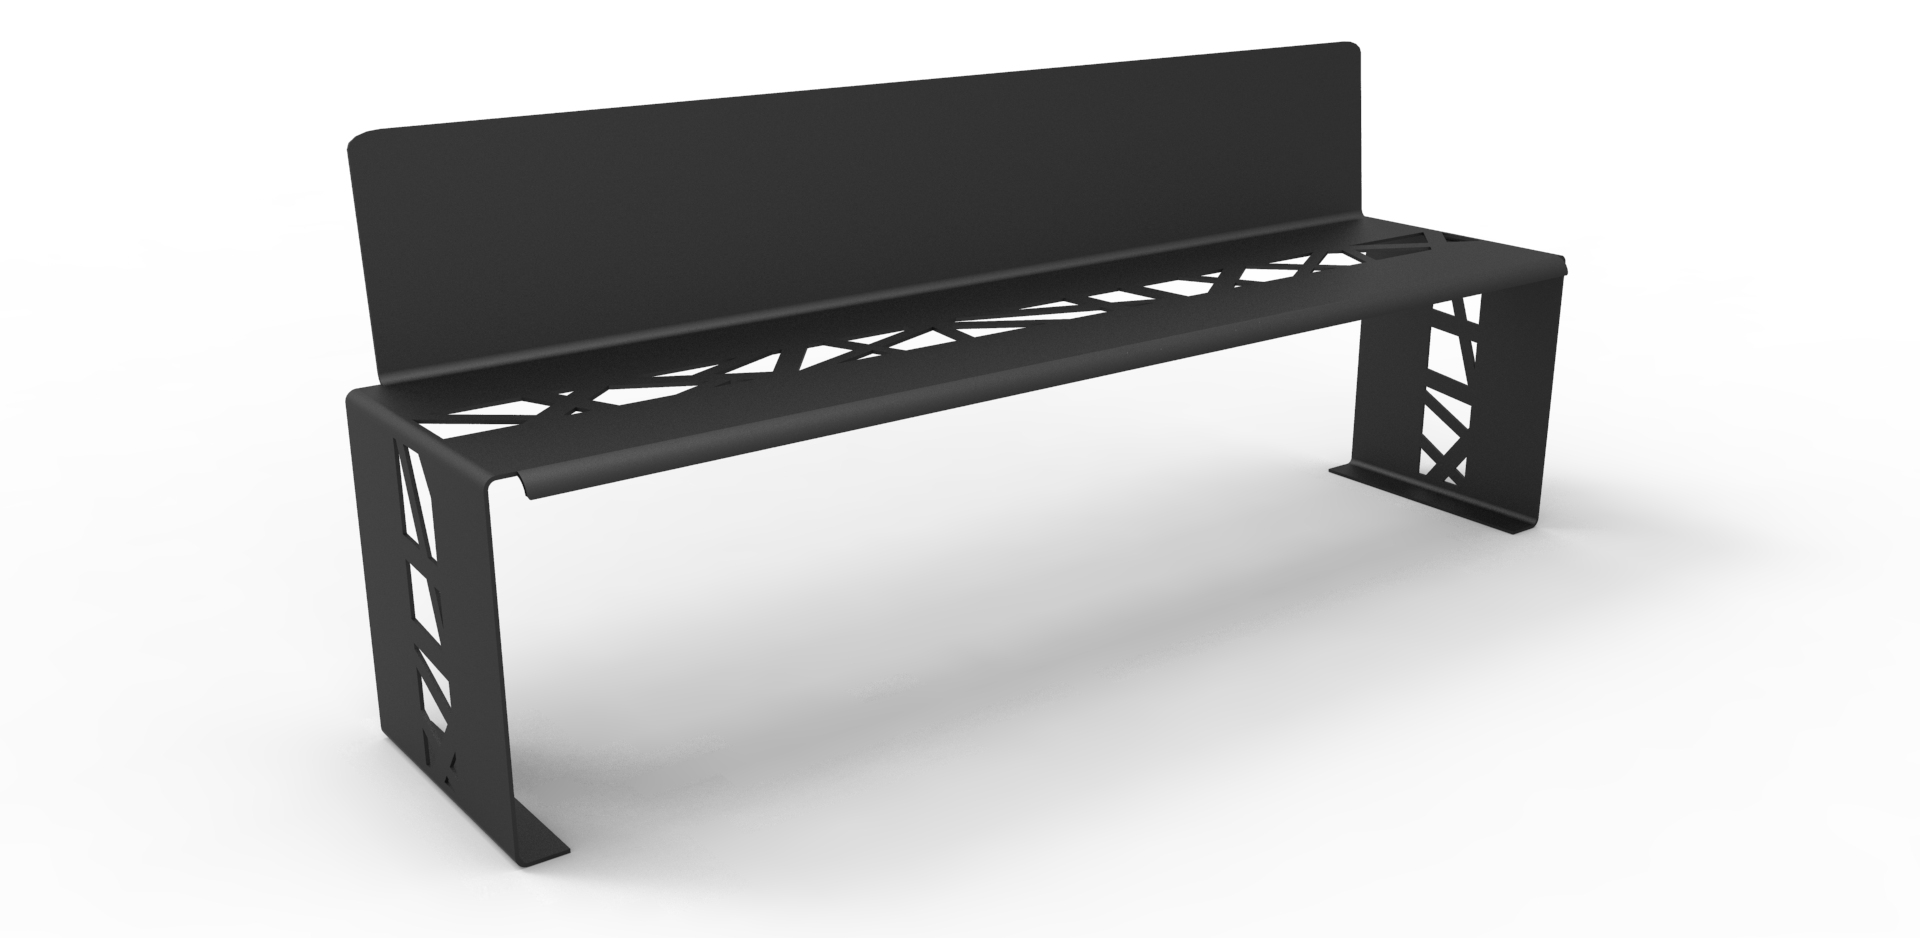 le banc public mobilier urbain france urba fabricant de mobilier urbain am nagement. Black Bedroom Furniture Sets. Home Design Ideas